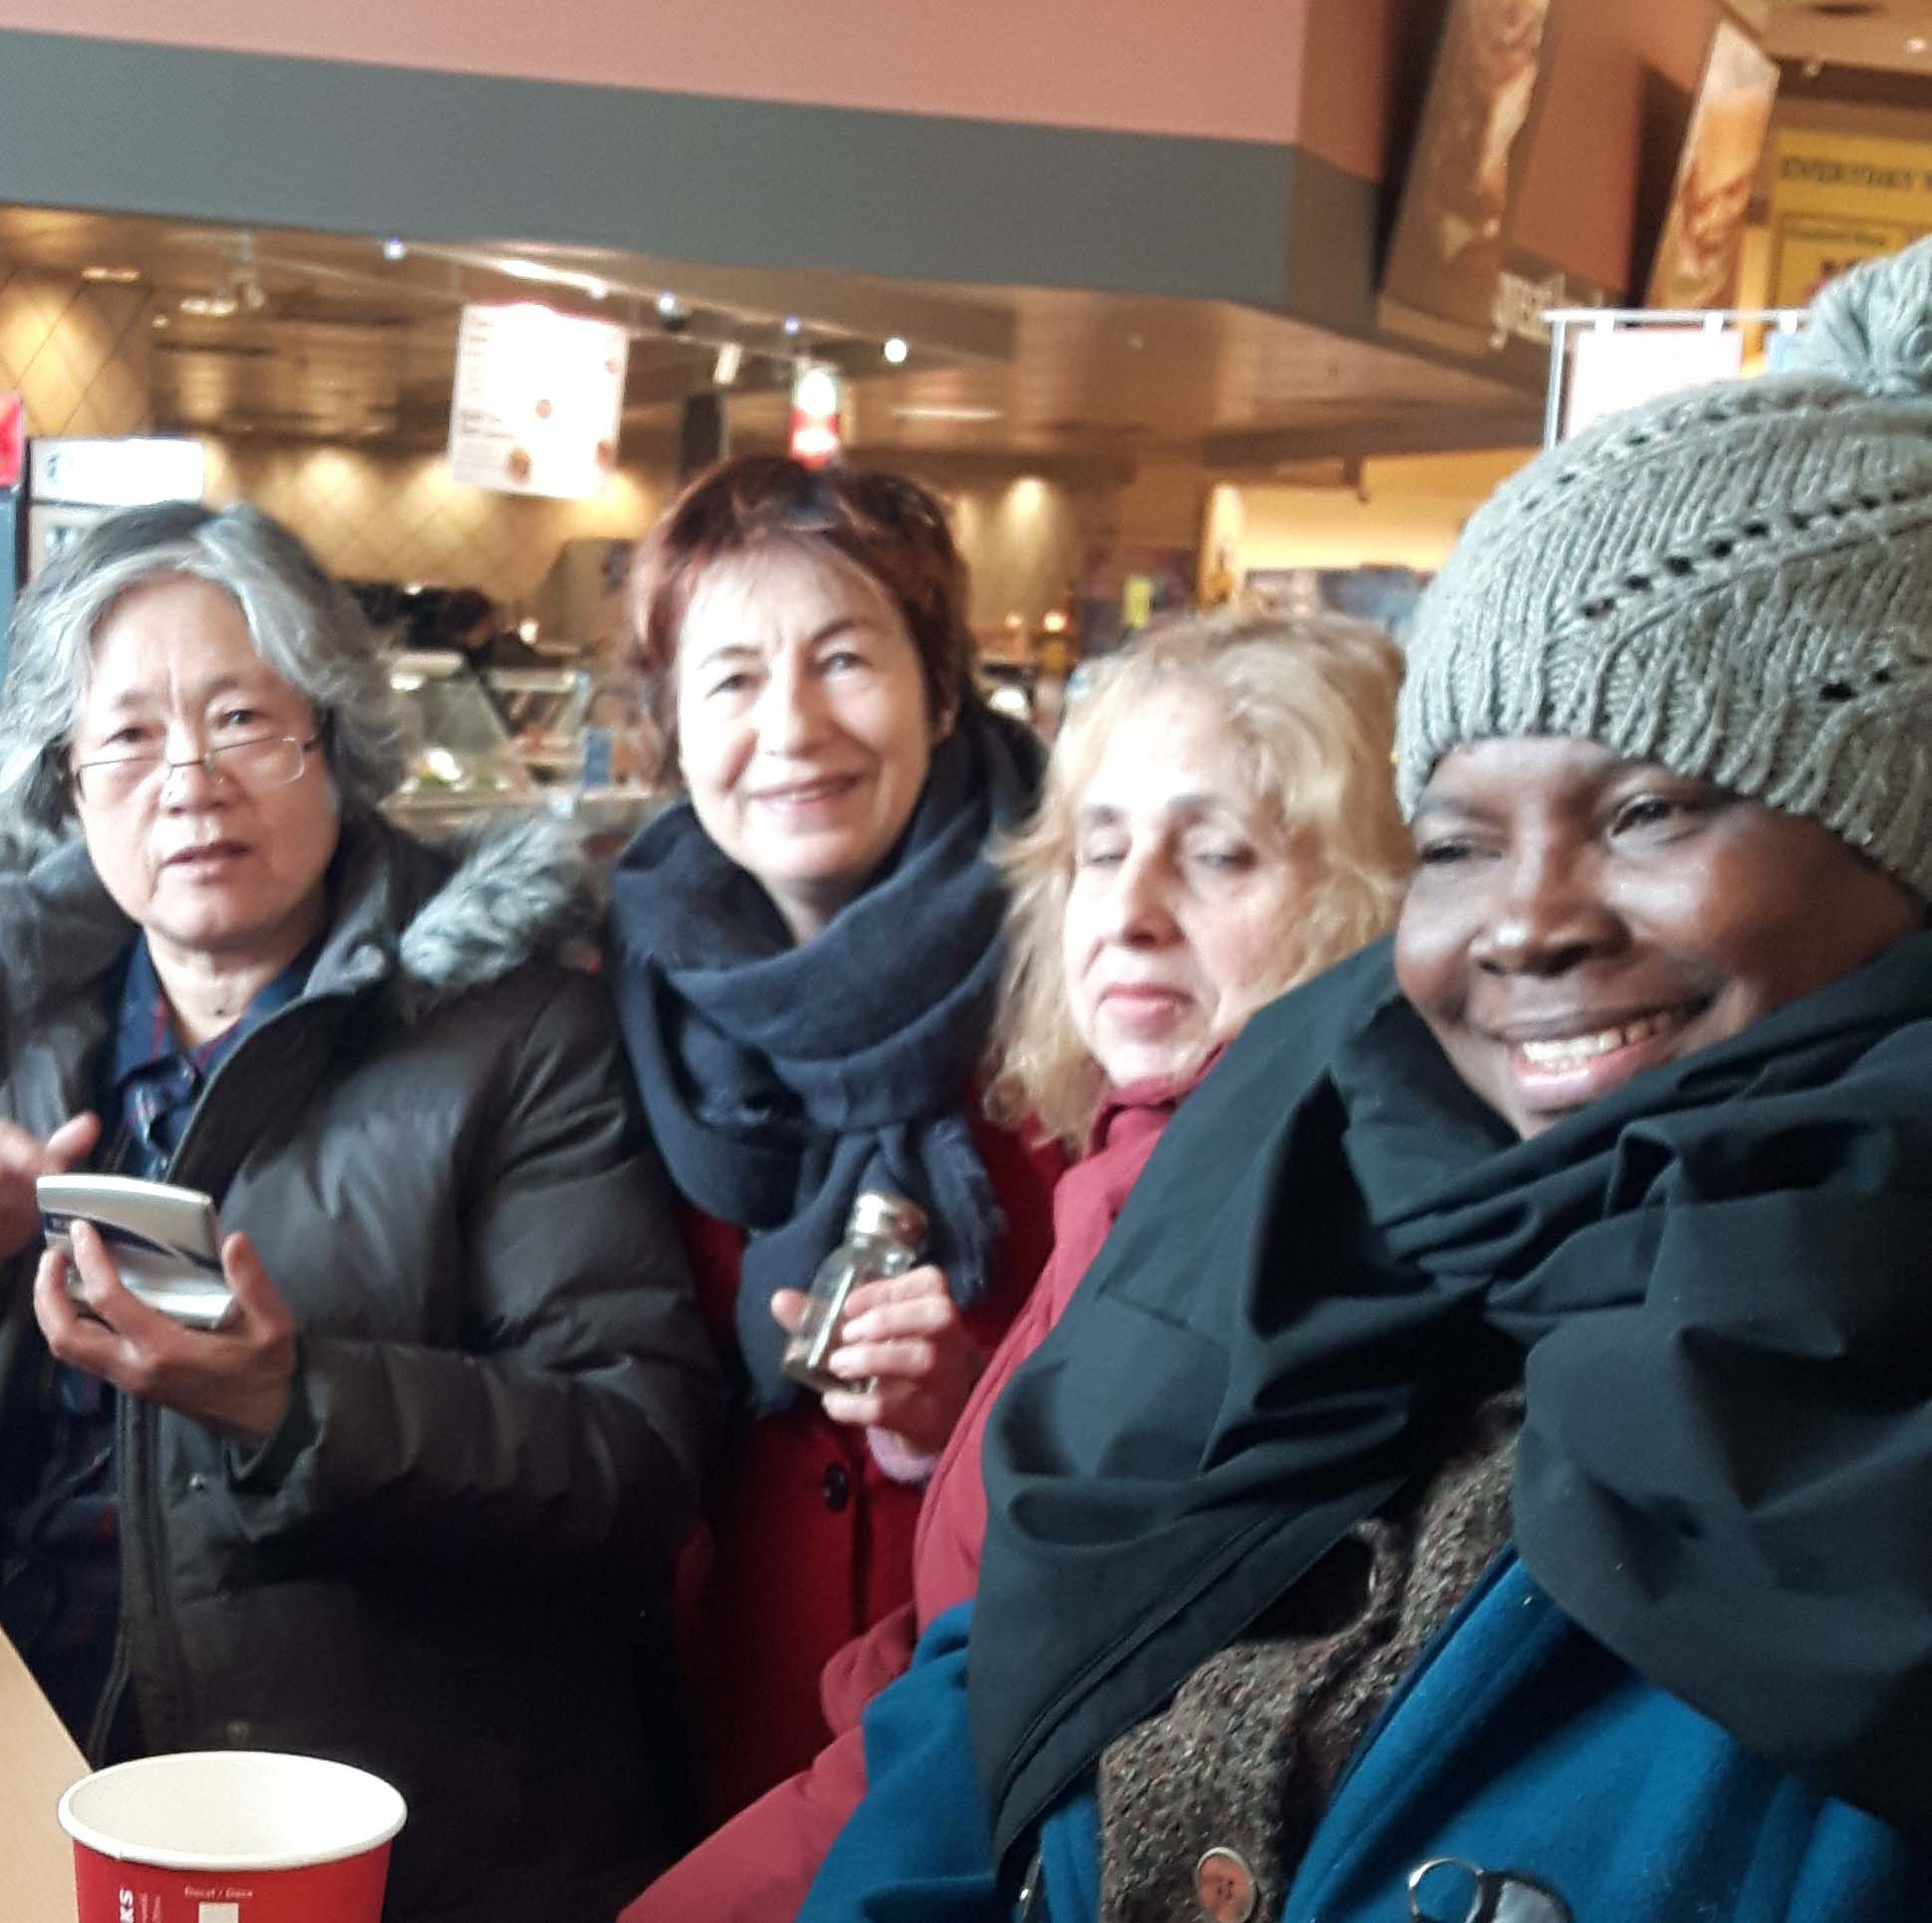 immigrant seniors are not a homogeneous group